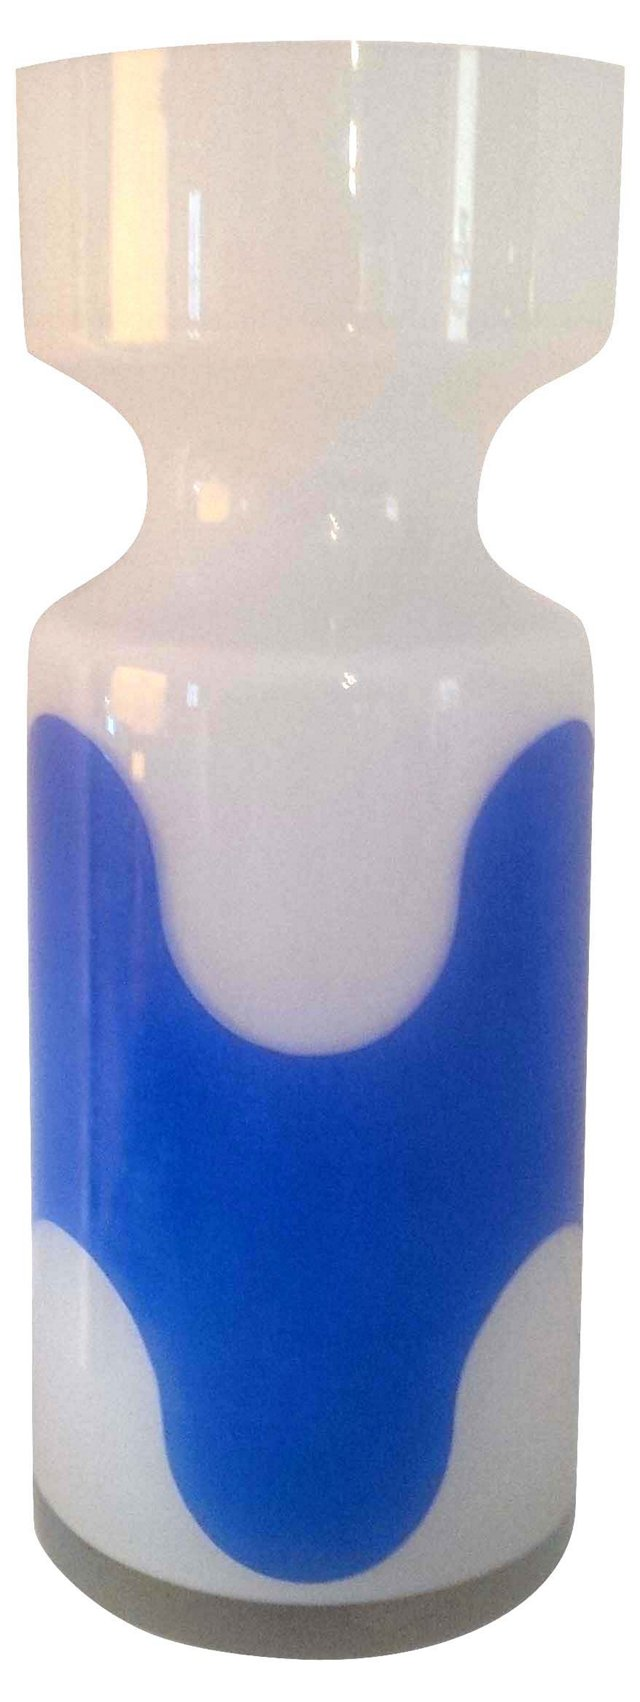 Raymor Blue & White Art Glass Vase